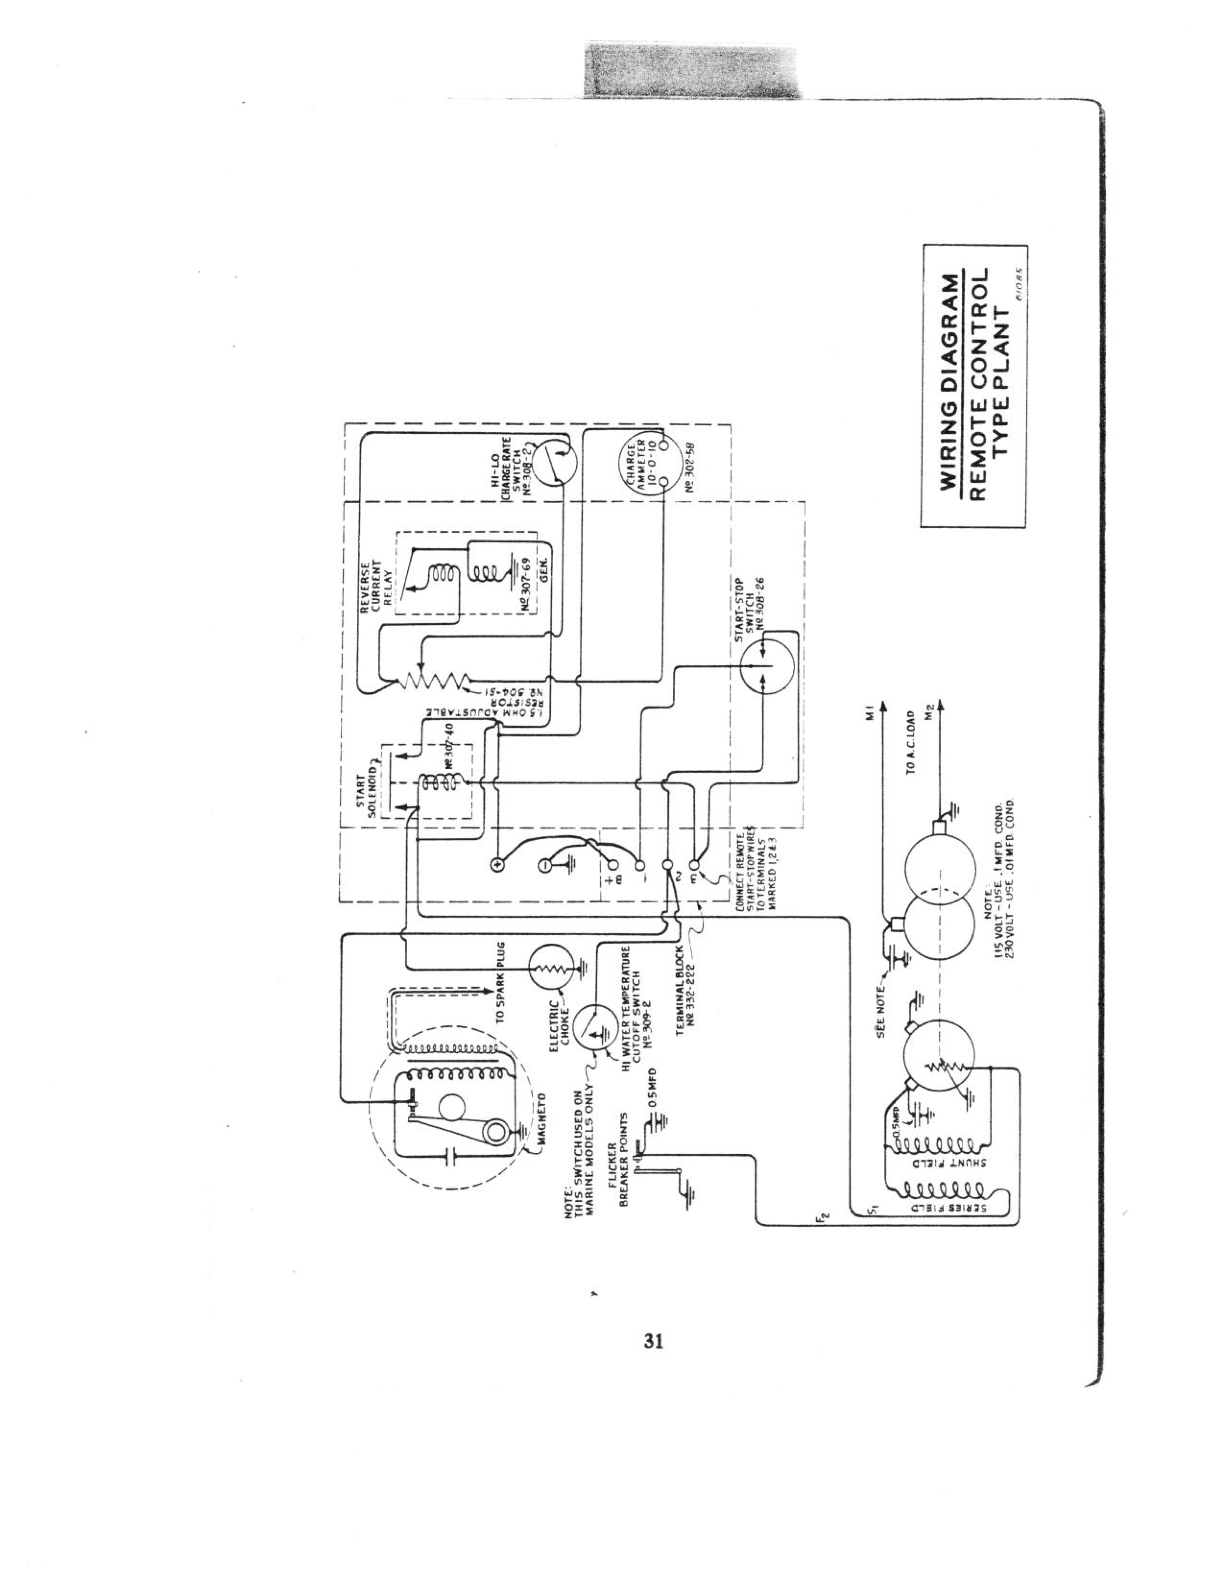 i am looking for a schematic for an onan generator   436296  can you help